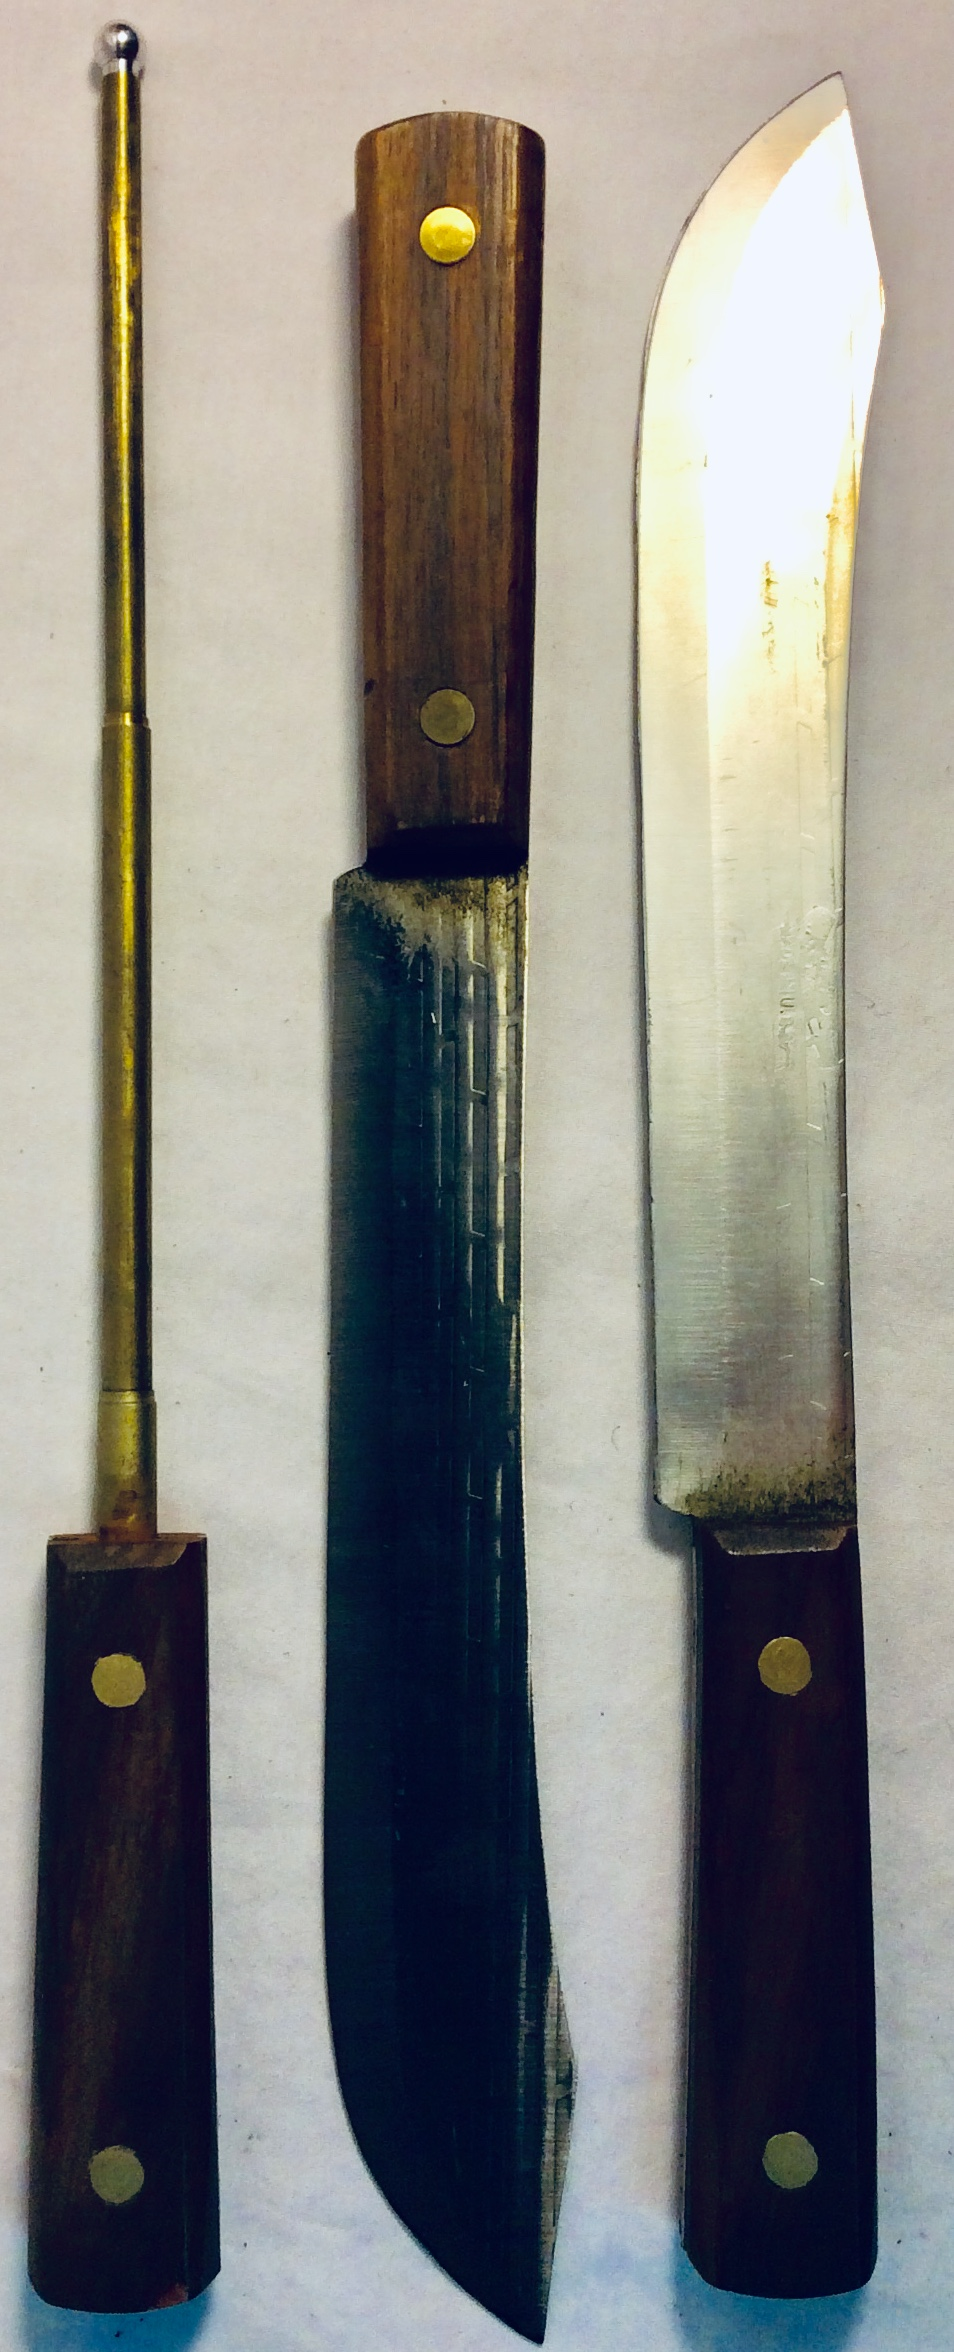 Hunt knife with wooden handle and long blade. x1 real x2 rubber and x2 VFX